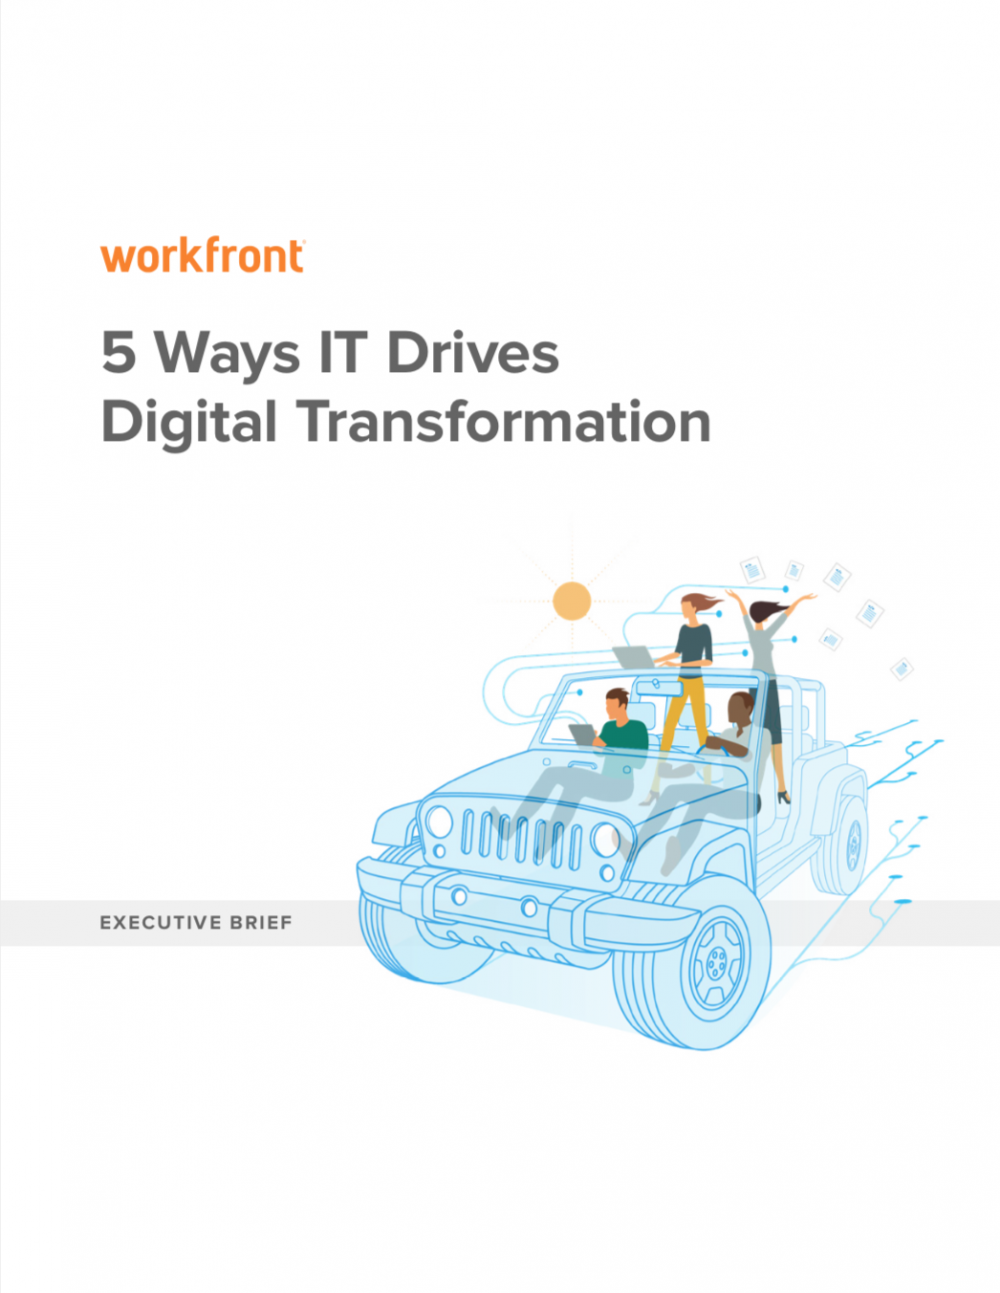 5 ways IT drives digital transformation